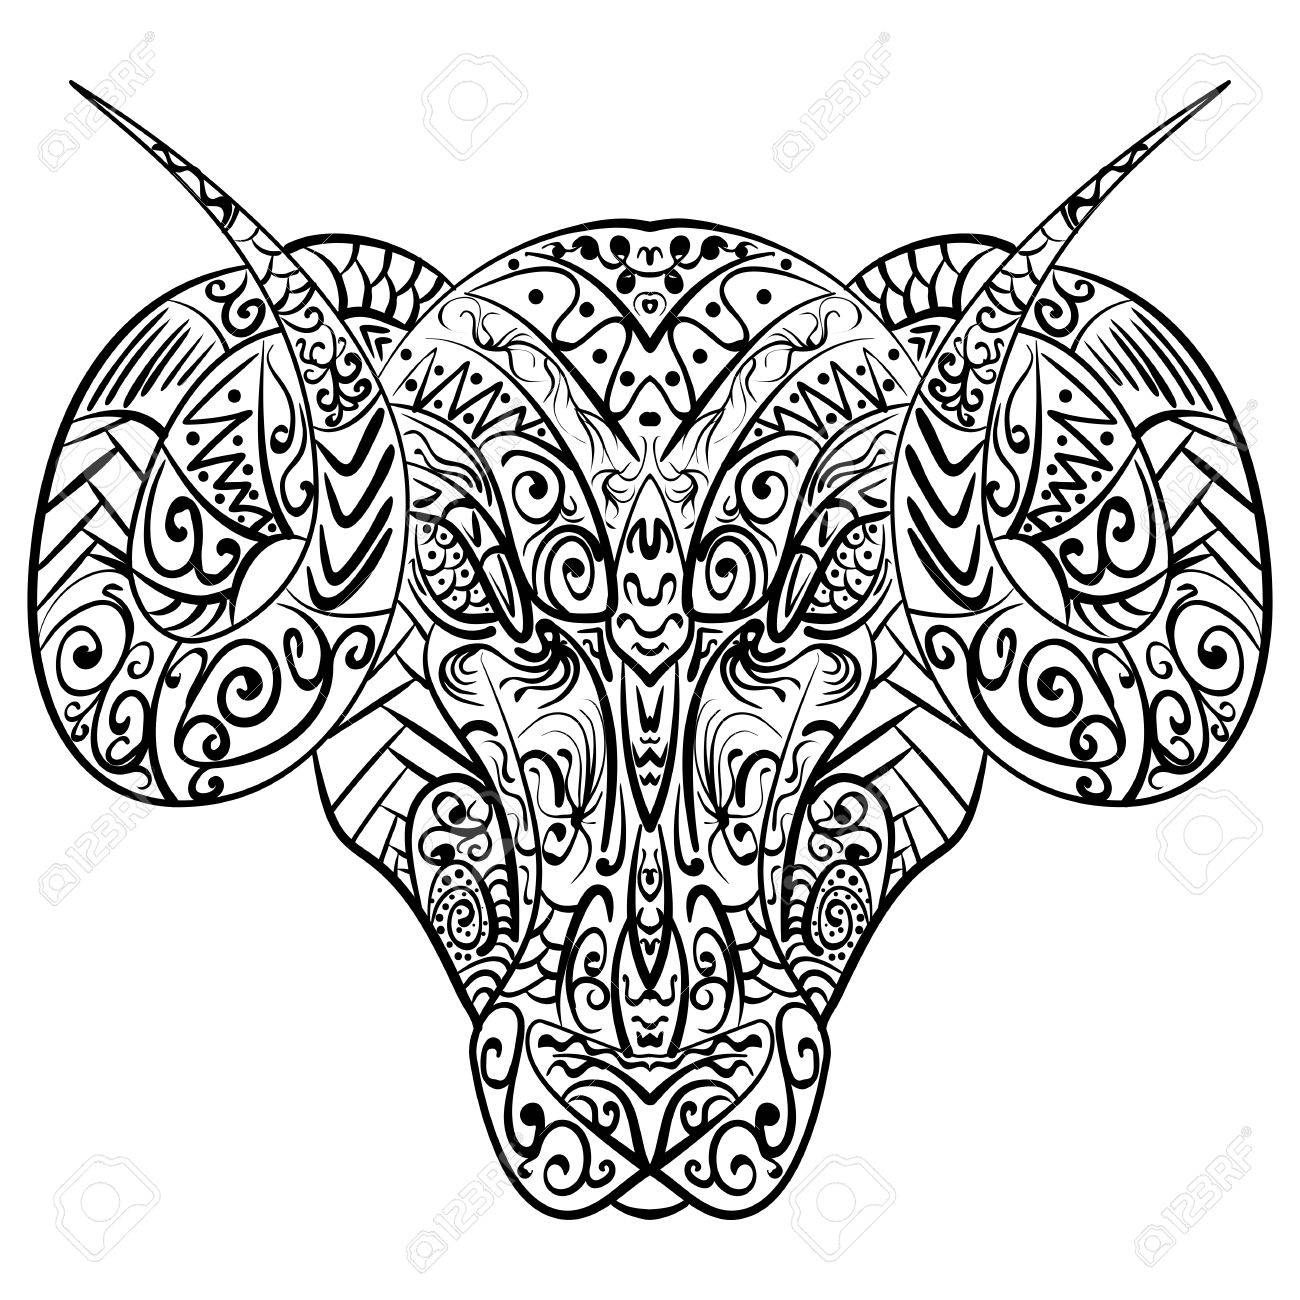 2706f92b7 Vector - Zentangle stylized cartoon goat ram head Hand drawn sketch adult  antistress coloring page zentangle vector illustration